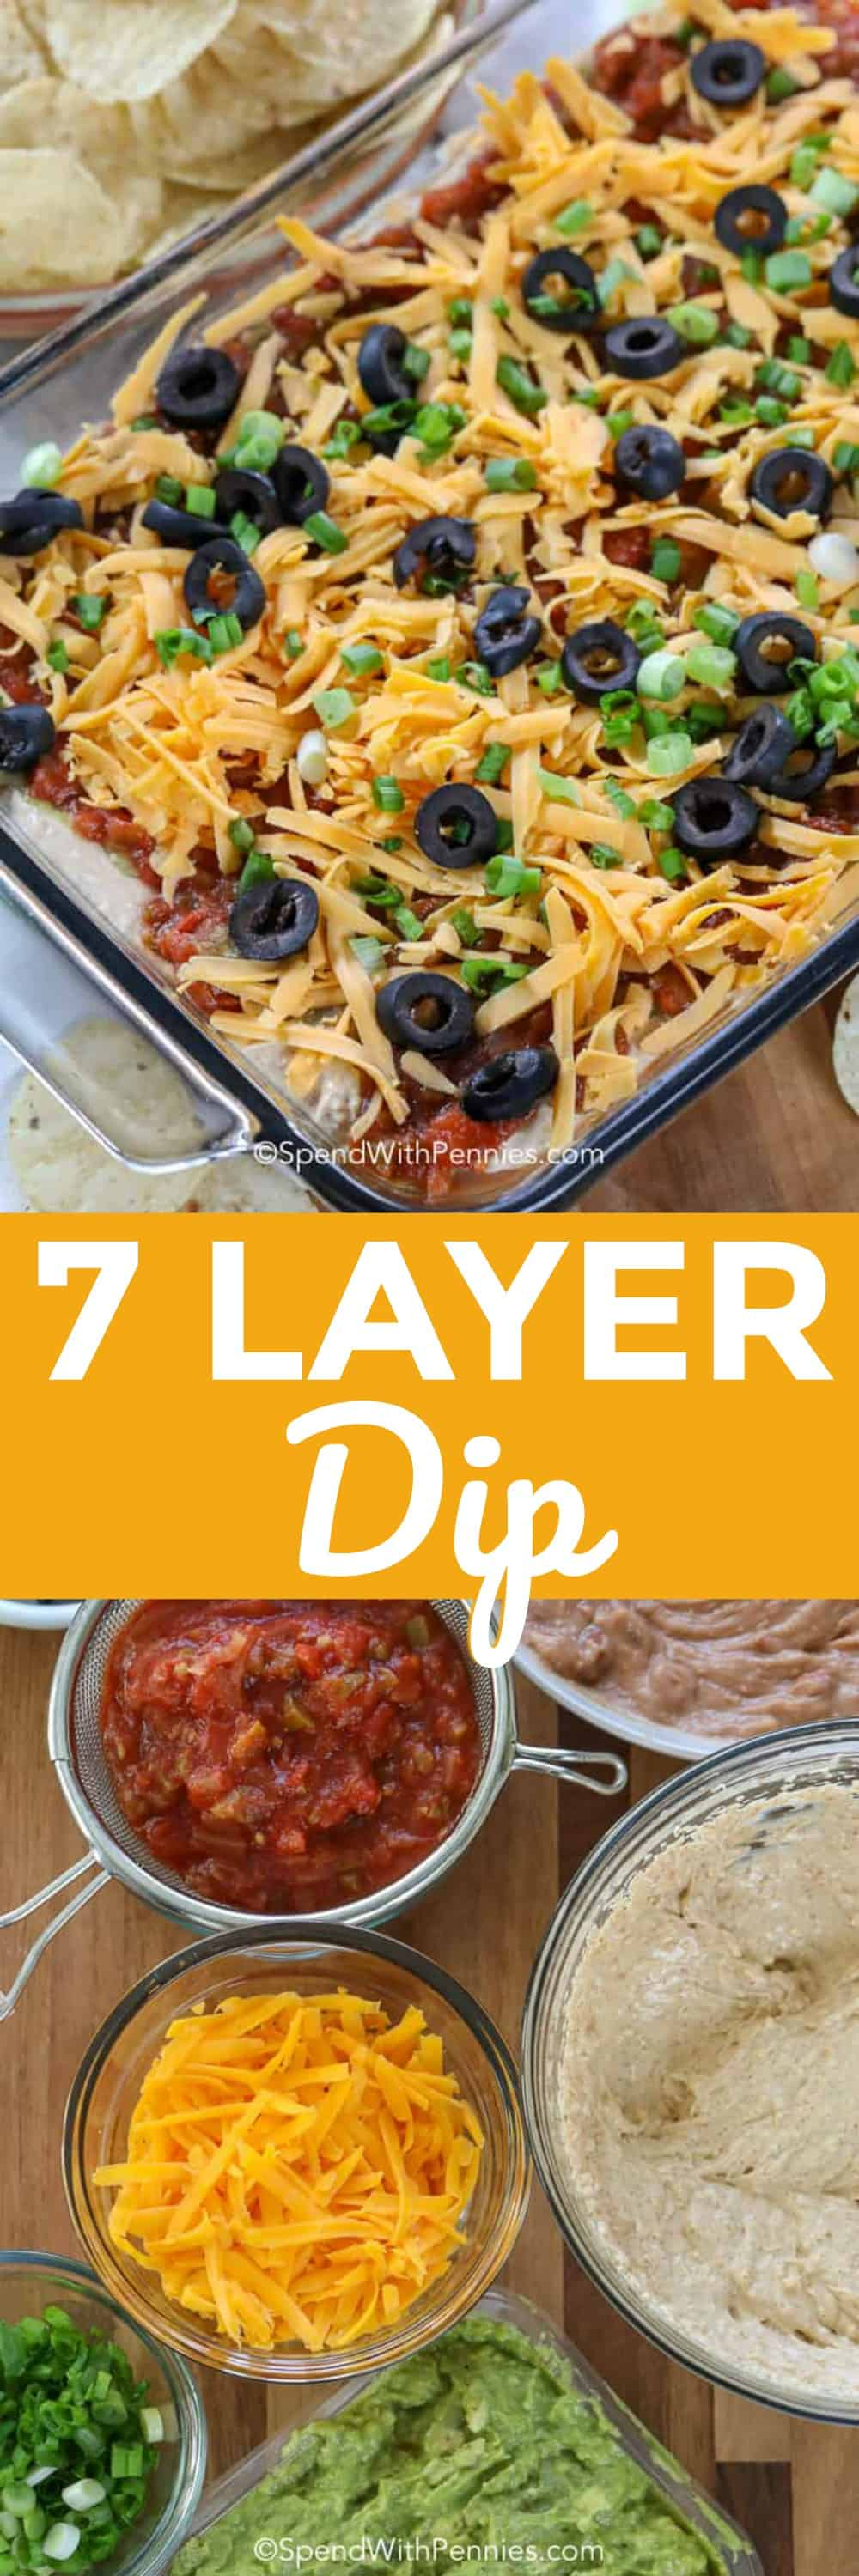 Simple and delicious, this easy 7 layer dip recipe is the perfect appetizer. Everyone will love it, trust me! #spendwithpennies #7layerdip #layerdip #sevelayerdip #7layerbeandip #beandip